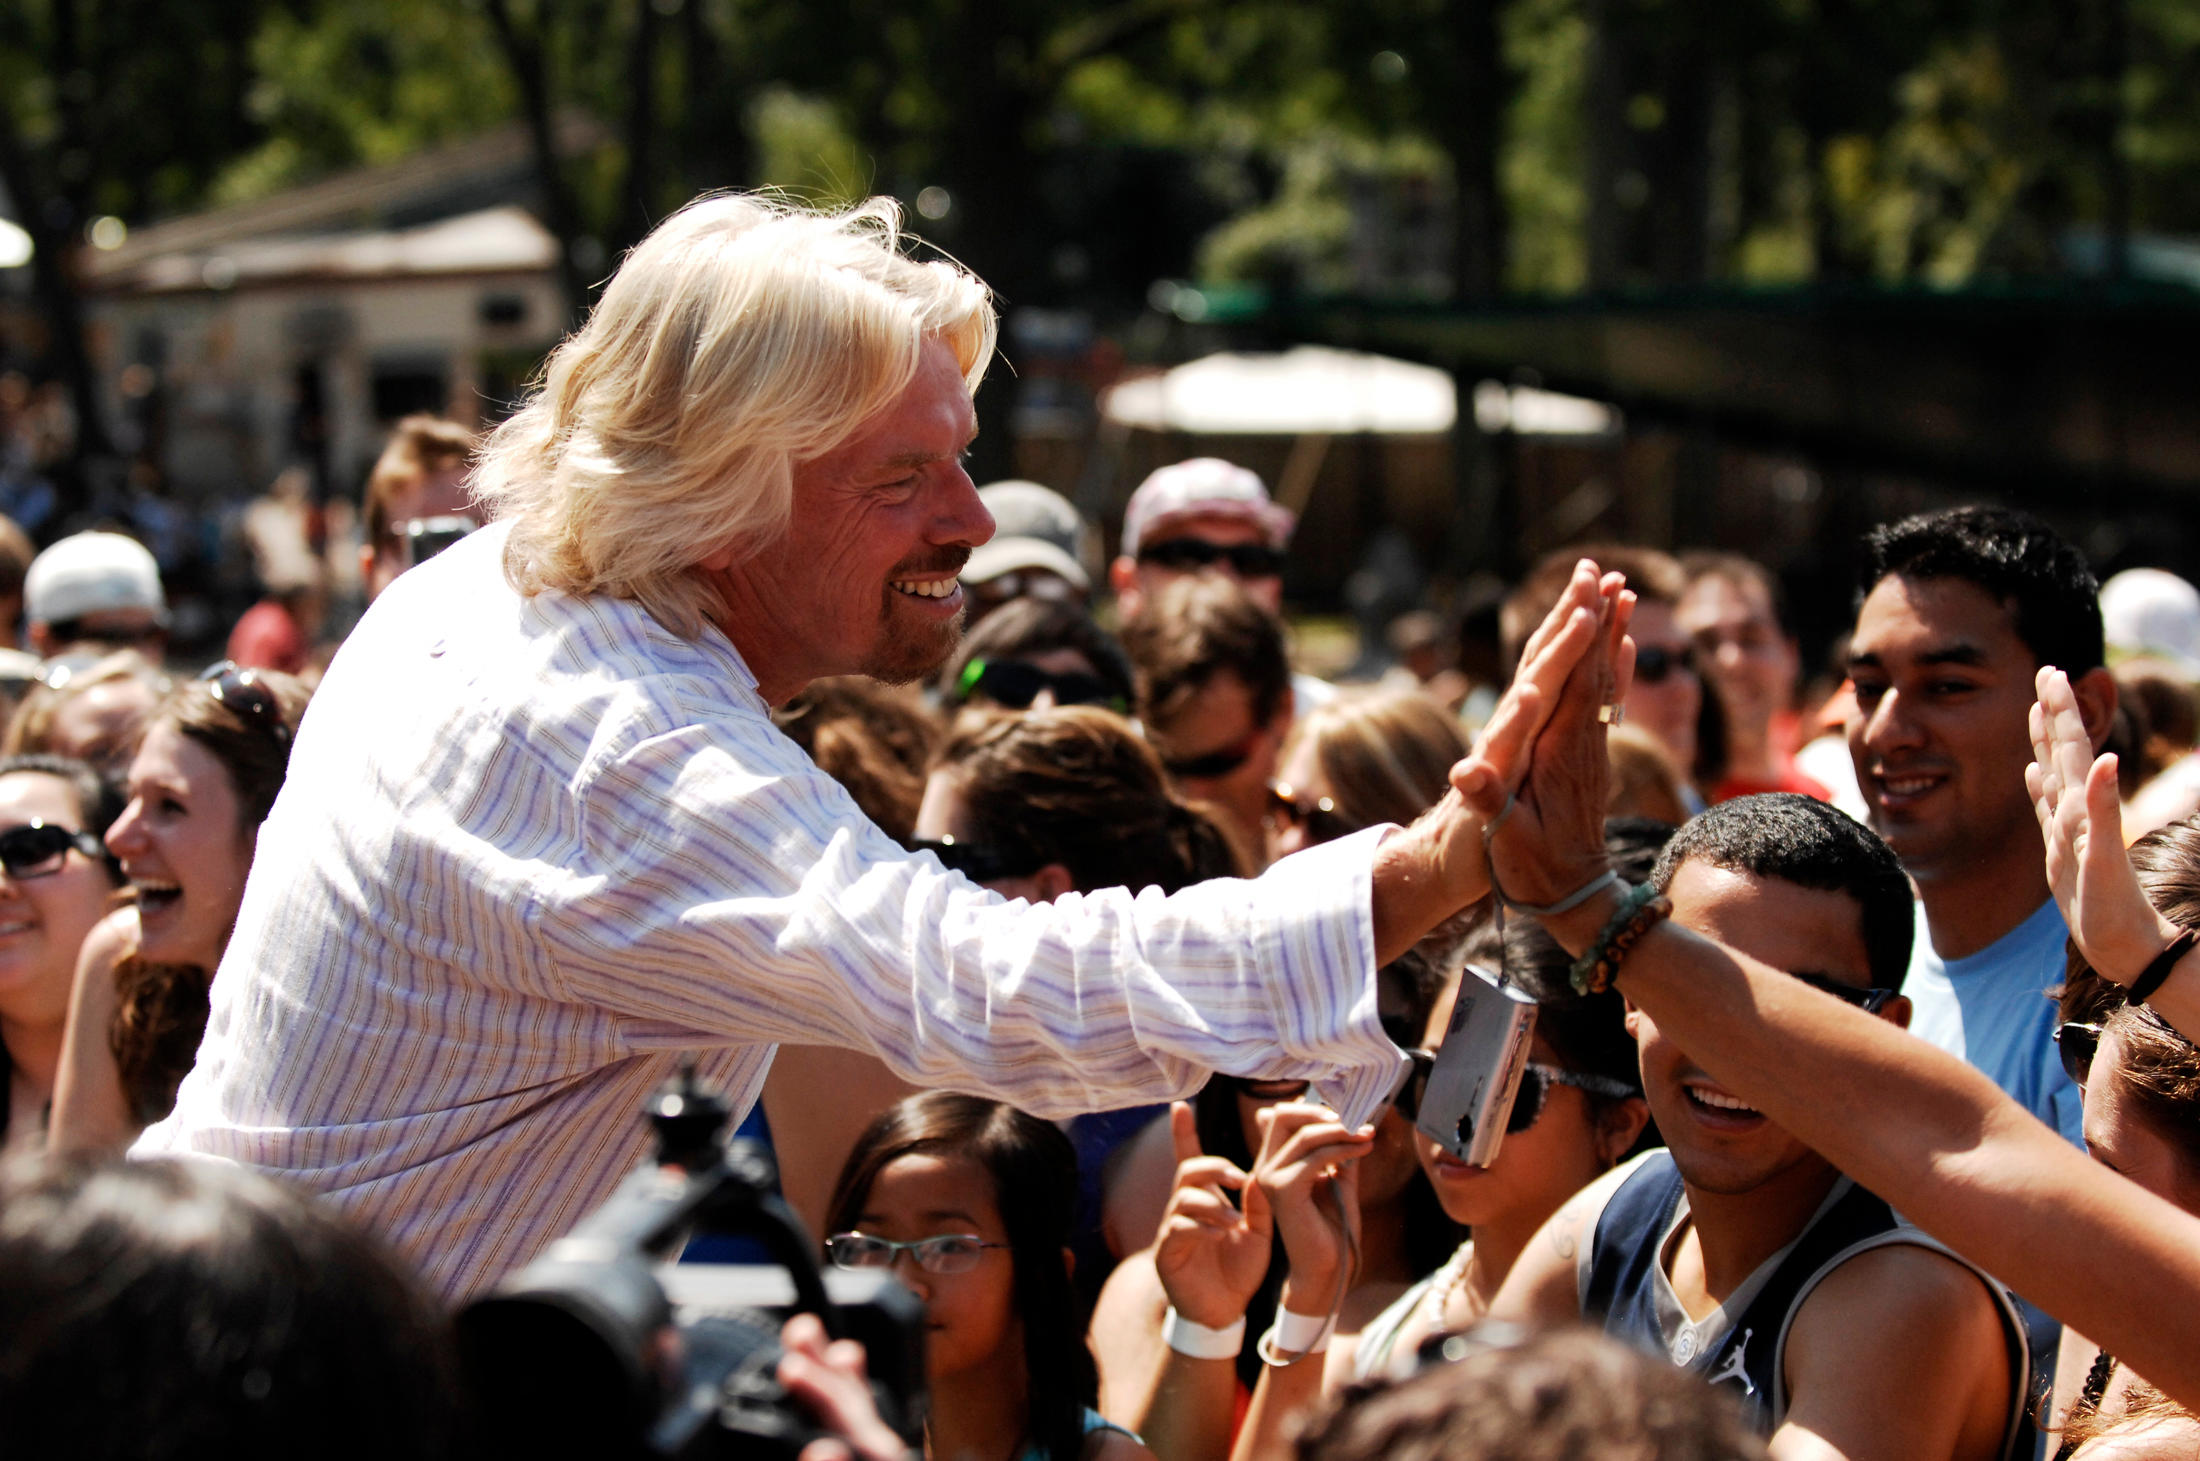 Sir Richard Branson, one of  the world's most successful entrepreneurs, called JA a wonderful model for integrating real-world and experiential learning into the education process and helping young people realize their dreams.